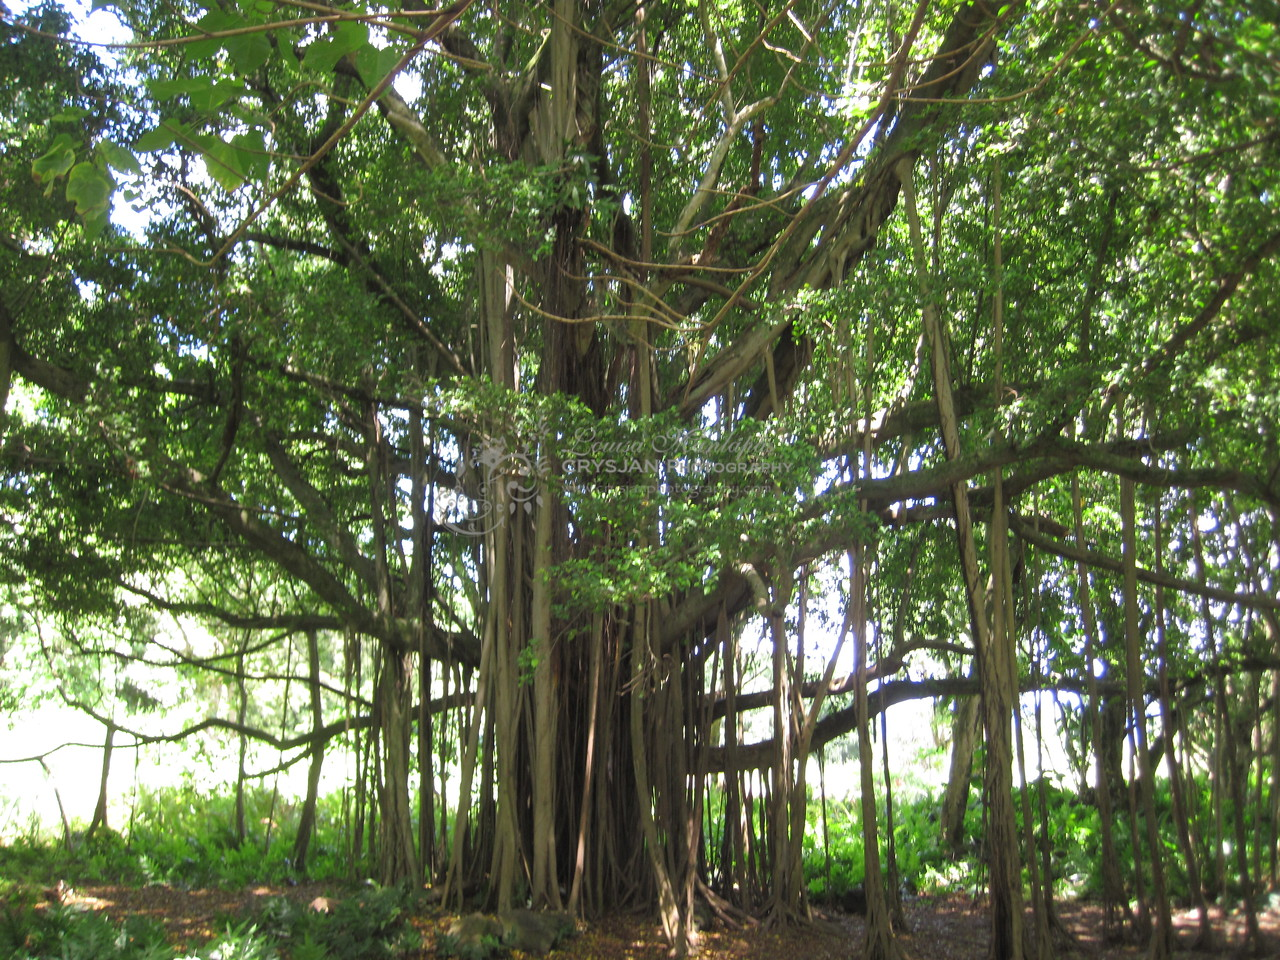 Banyan Tree at Haleakala National Park.  Taken from a small Canon SD870 IS 10 megapixel digital camera...